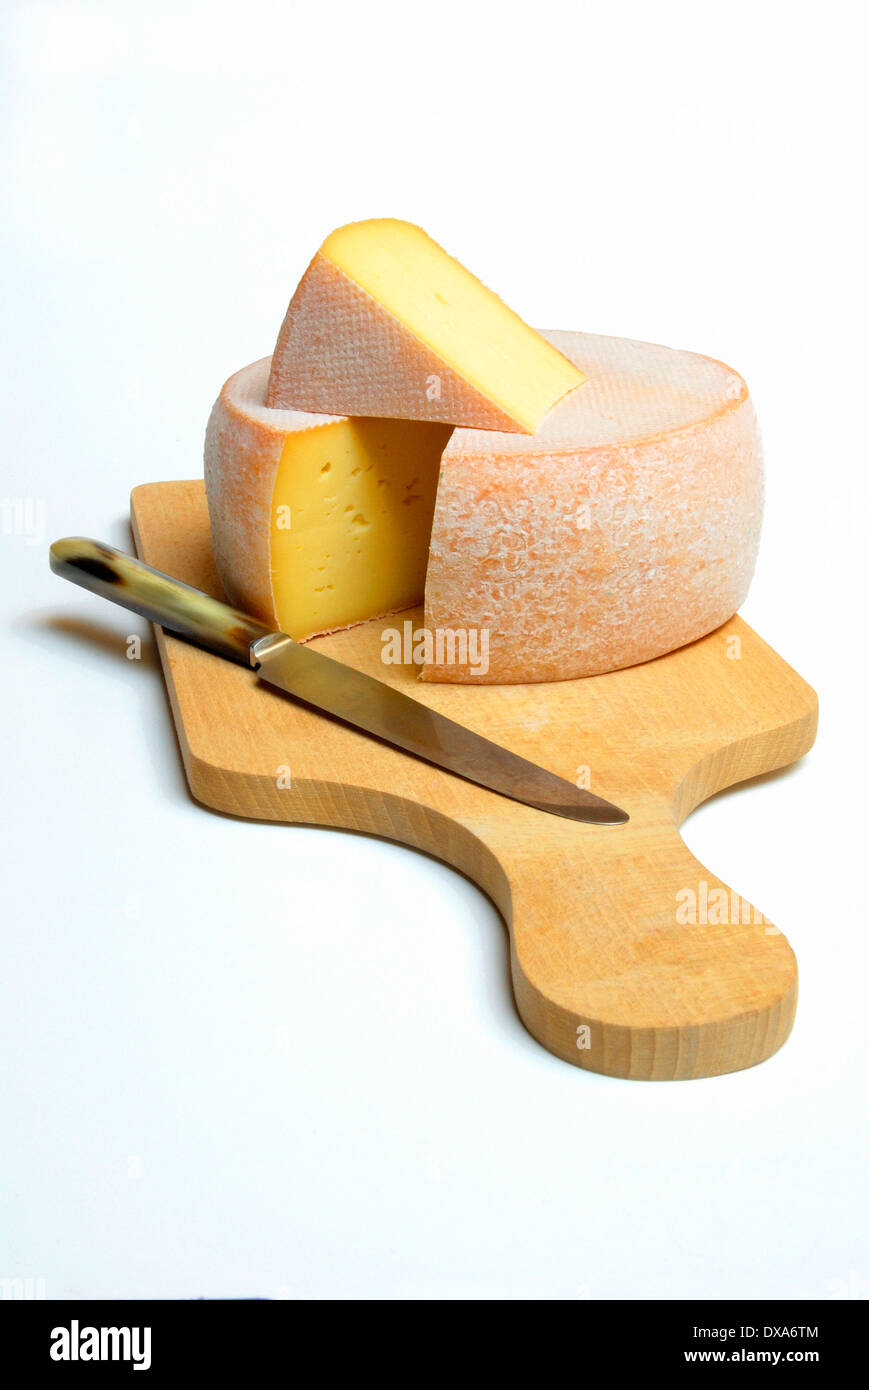 Cheese on cutting board - Stock Image